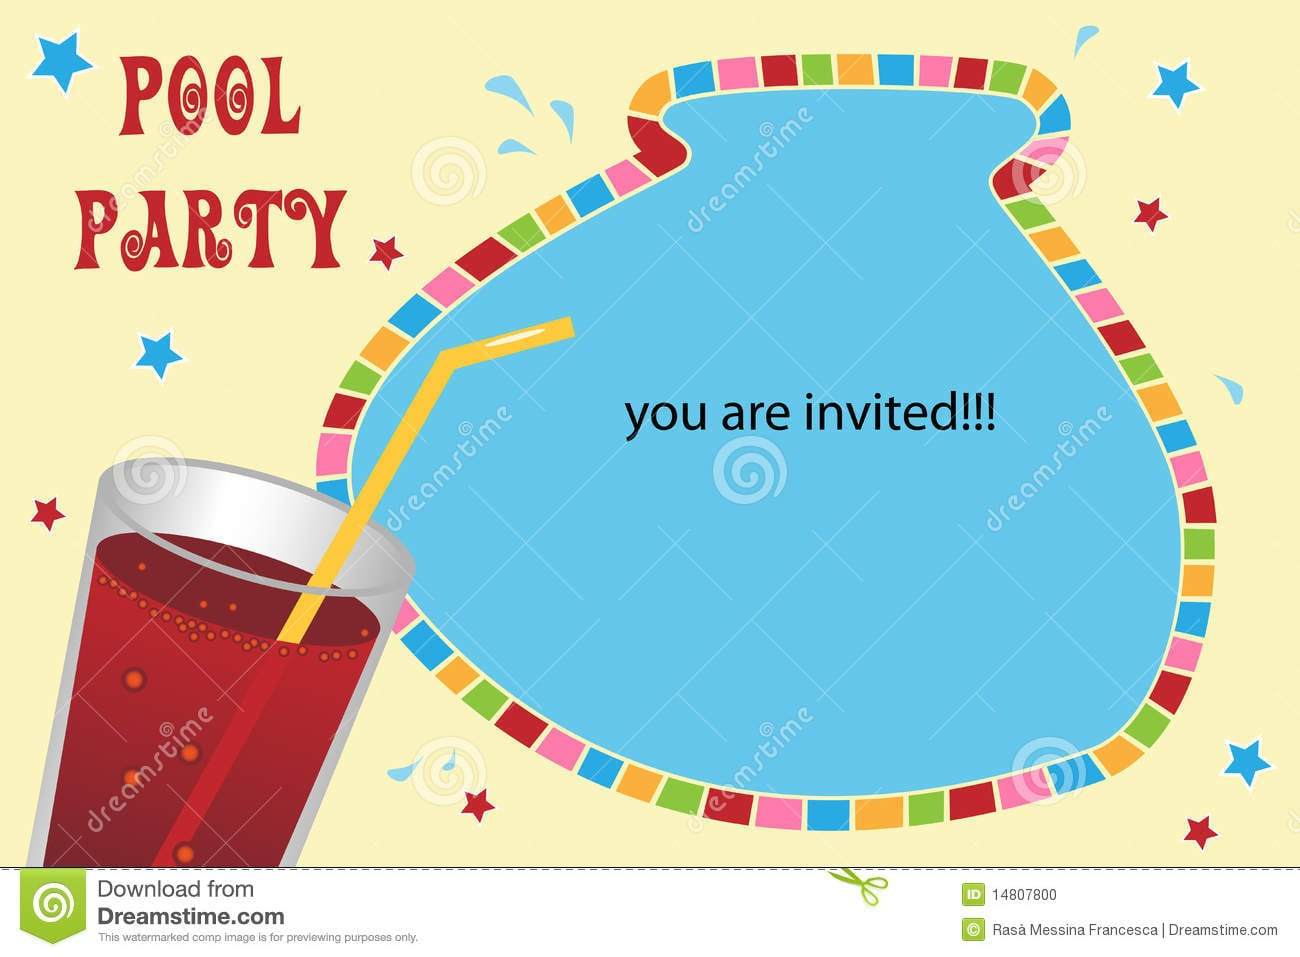 Party Pool Card Invitation